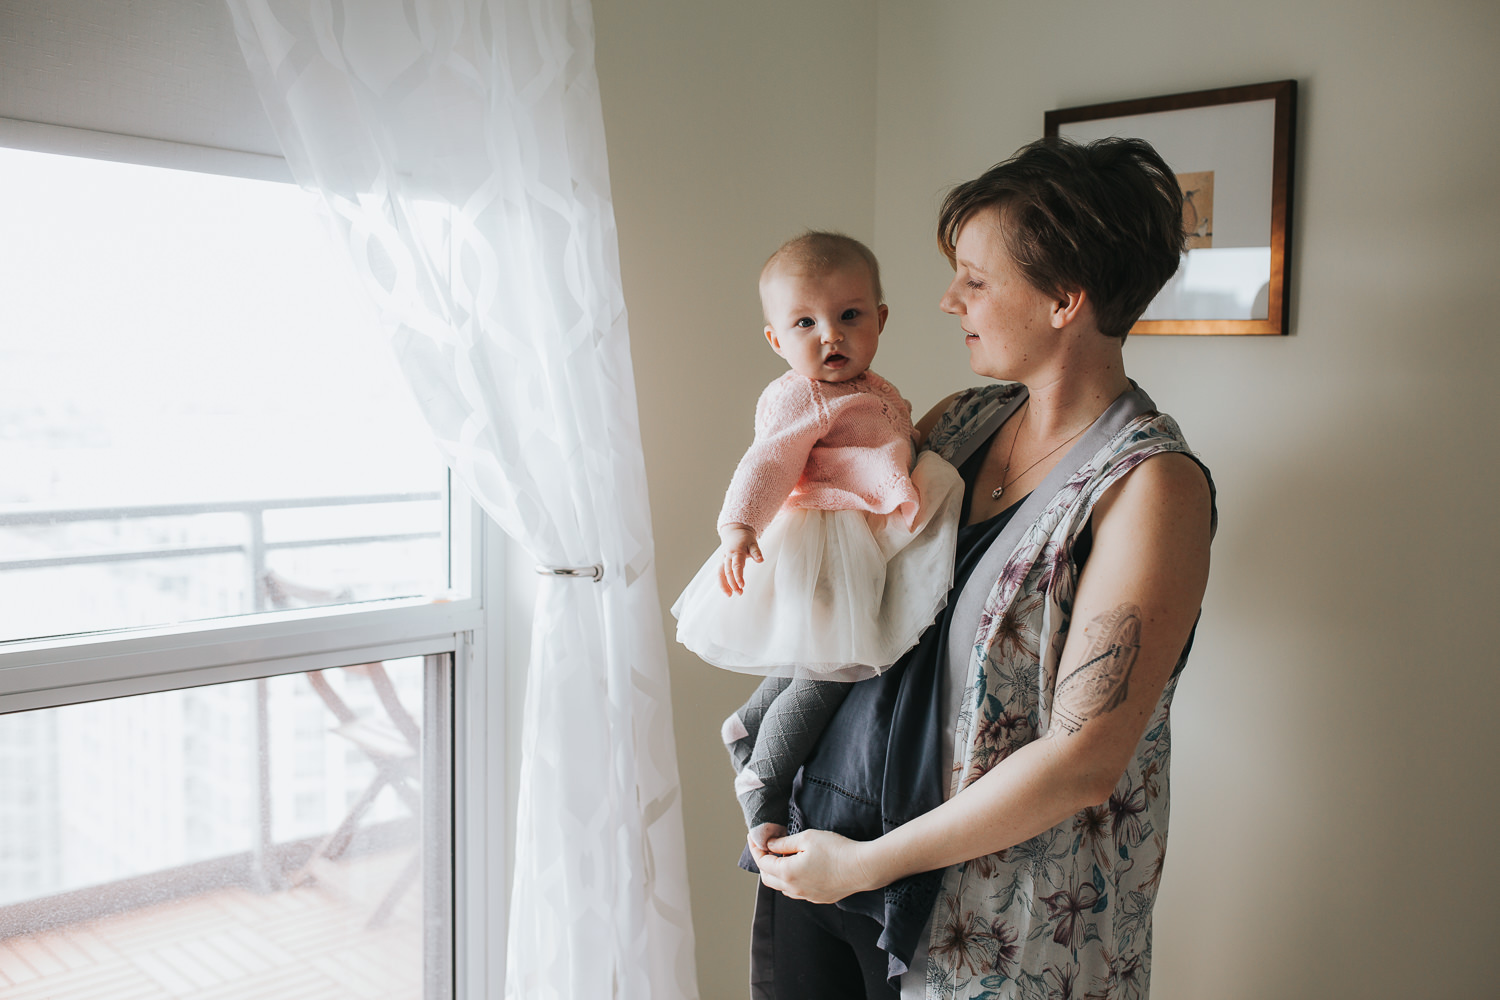 mom holding and looking at 5 month old baby daughter in pink sweater, baby looking at camera -  Stouffville lifestyle photos